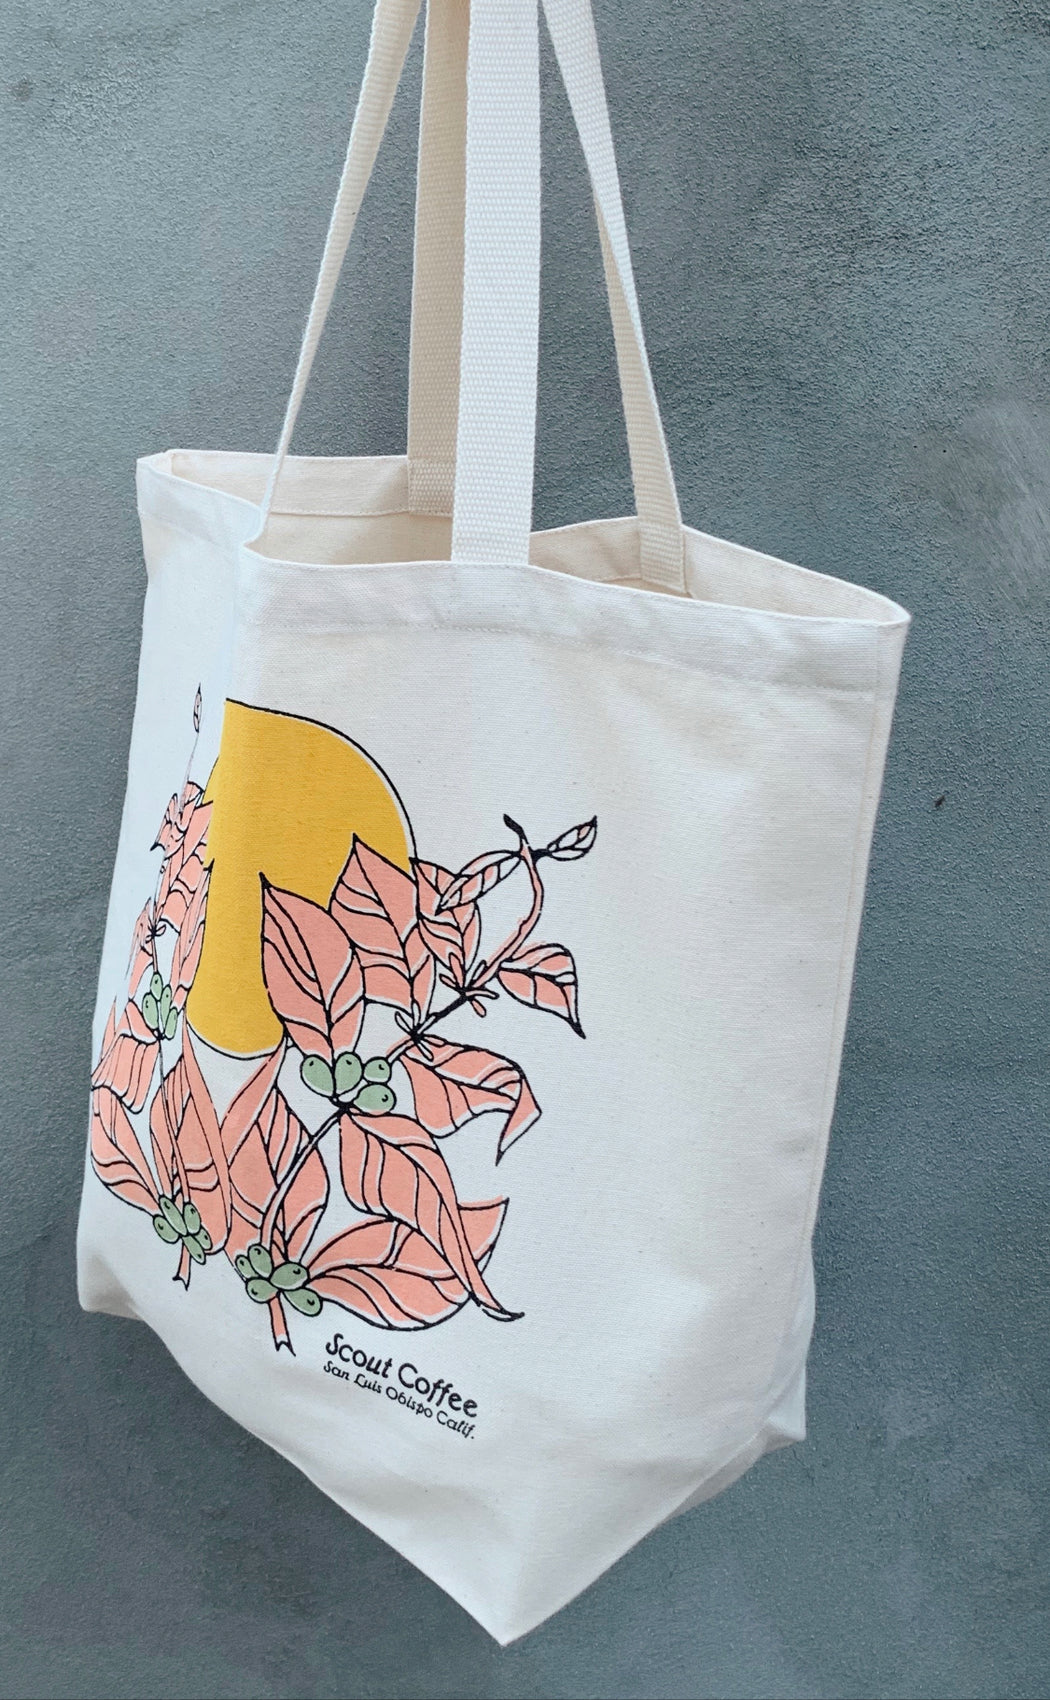 Scout Coffee Botanical Tote Bag